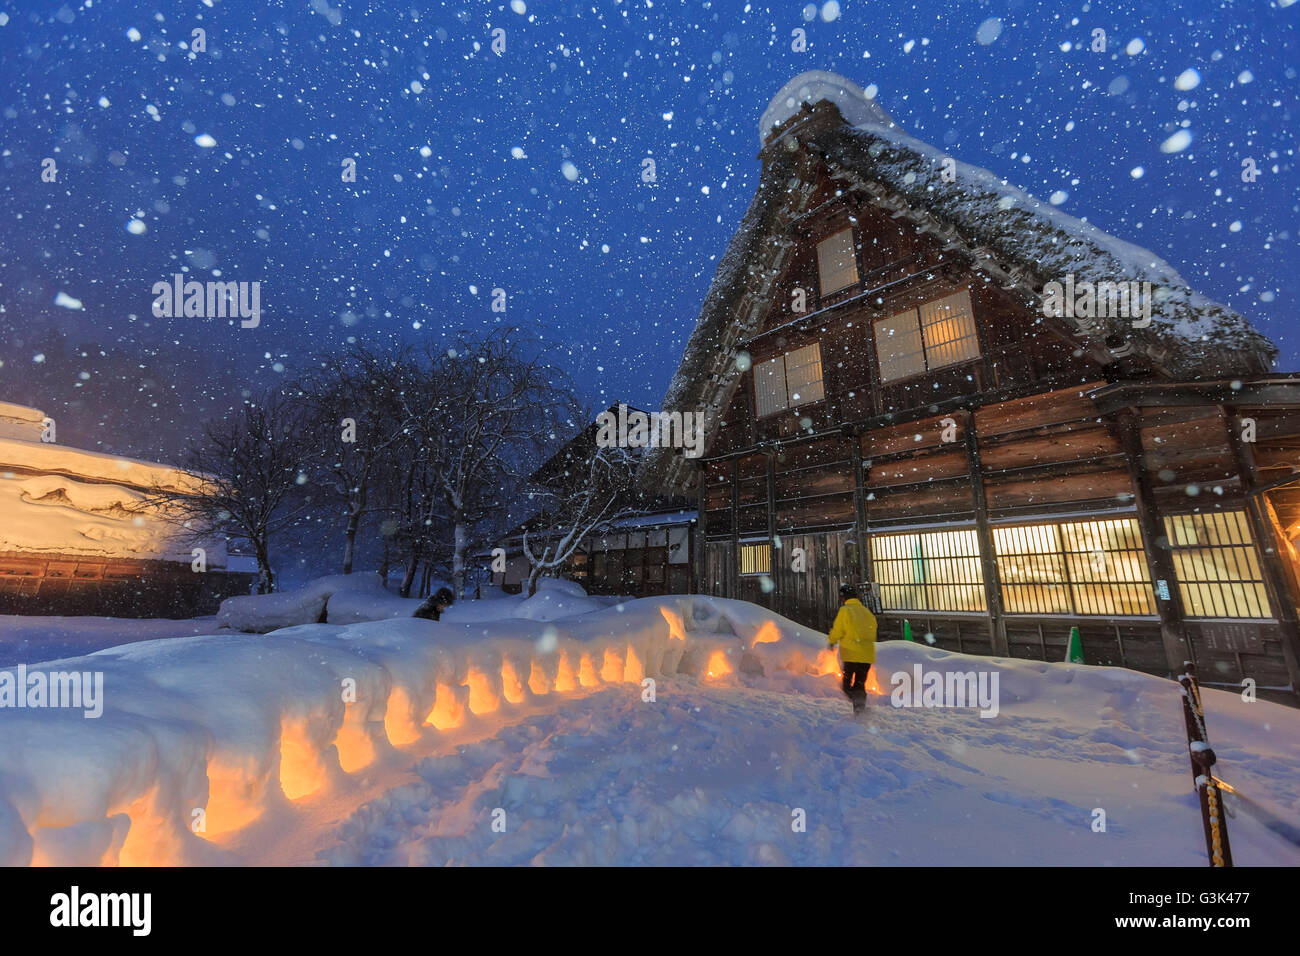 Historic Villages of Shirakawa-go in a snowy day at night - Stock Image